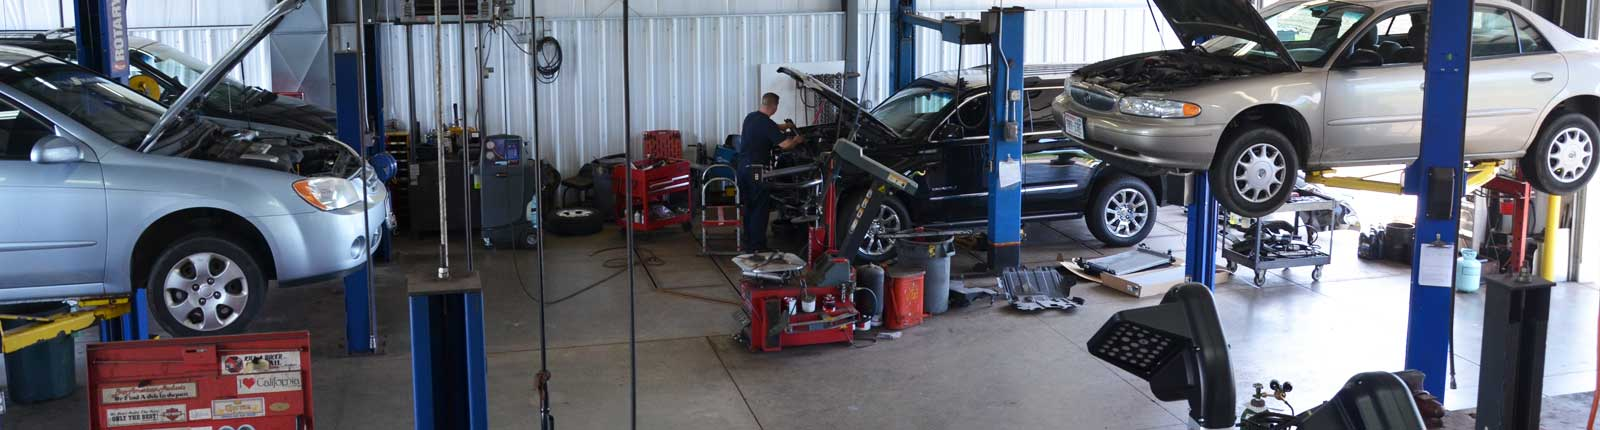 Auto Repair Services >> All The Auto Repair Services You Need For Your Vehicle Right